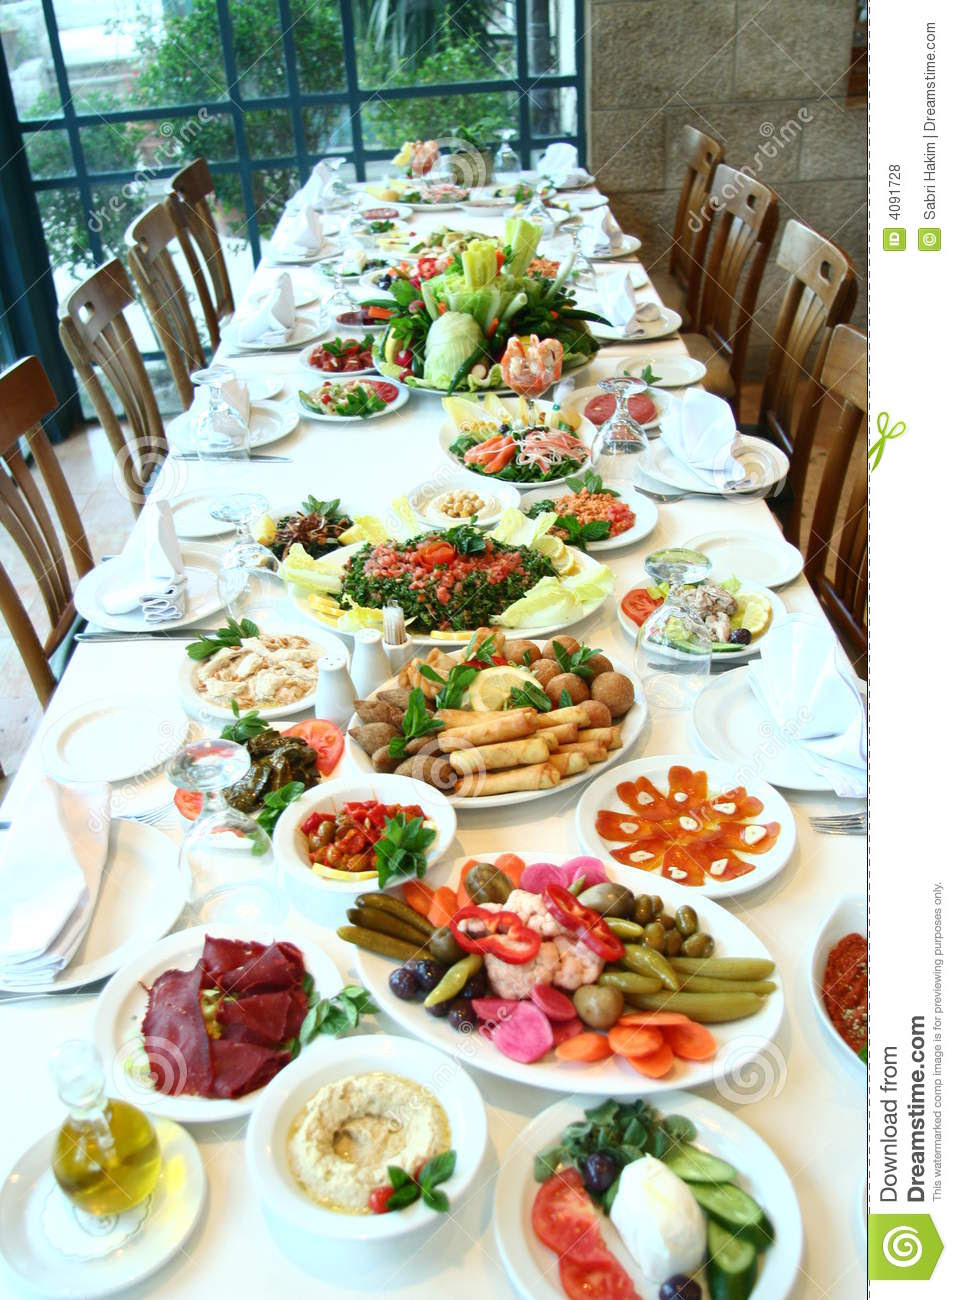 Table Full Of Food Royalty Free Stock Photos - Image: 4091728